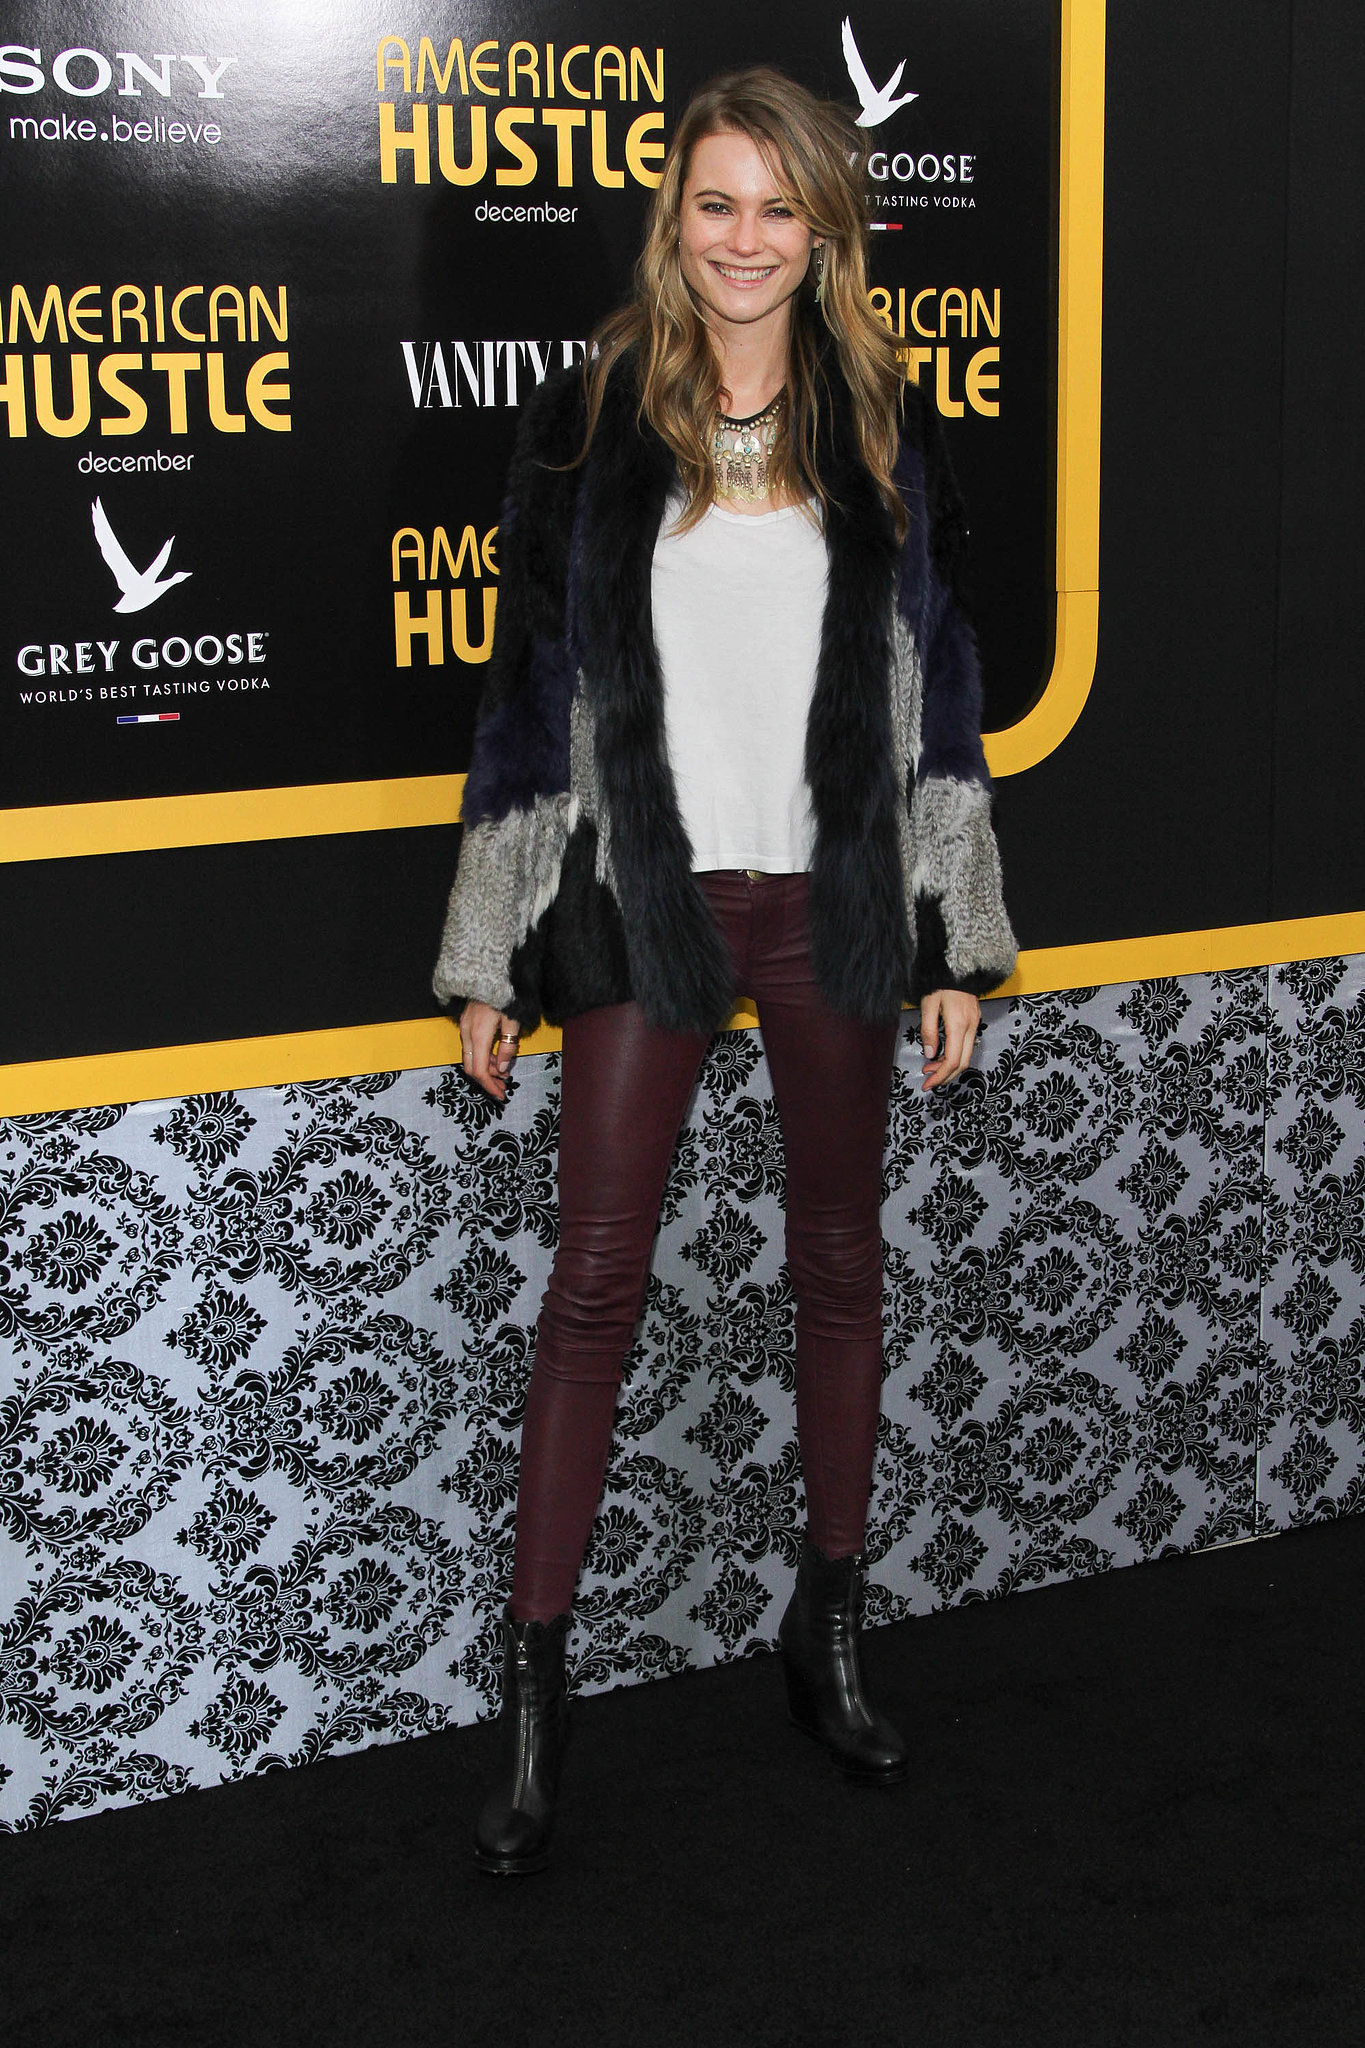 Behati Prinsloo at the American Hustle premiere.